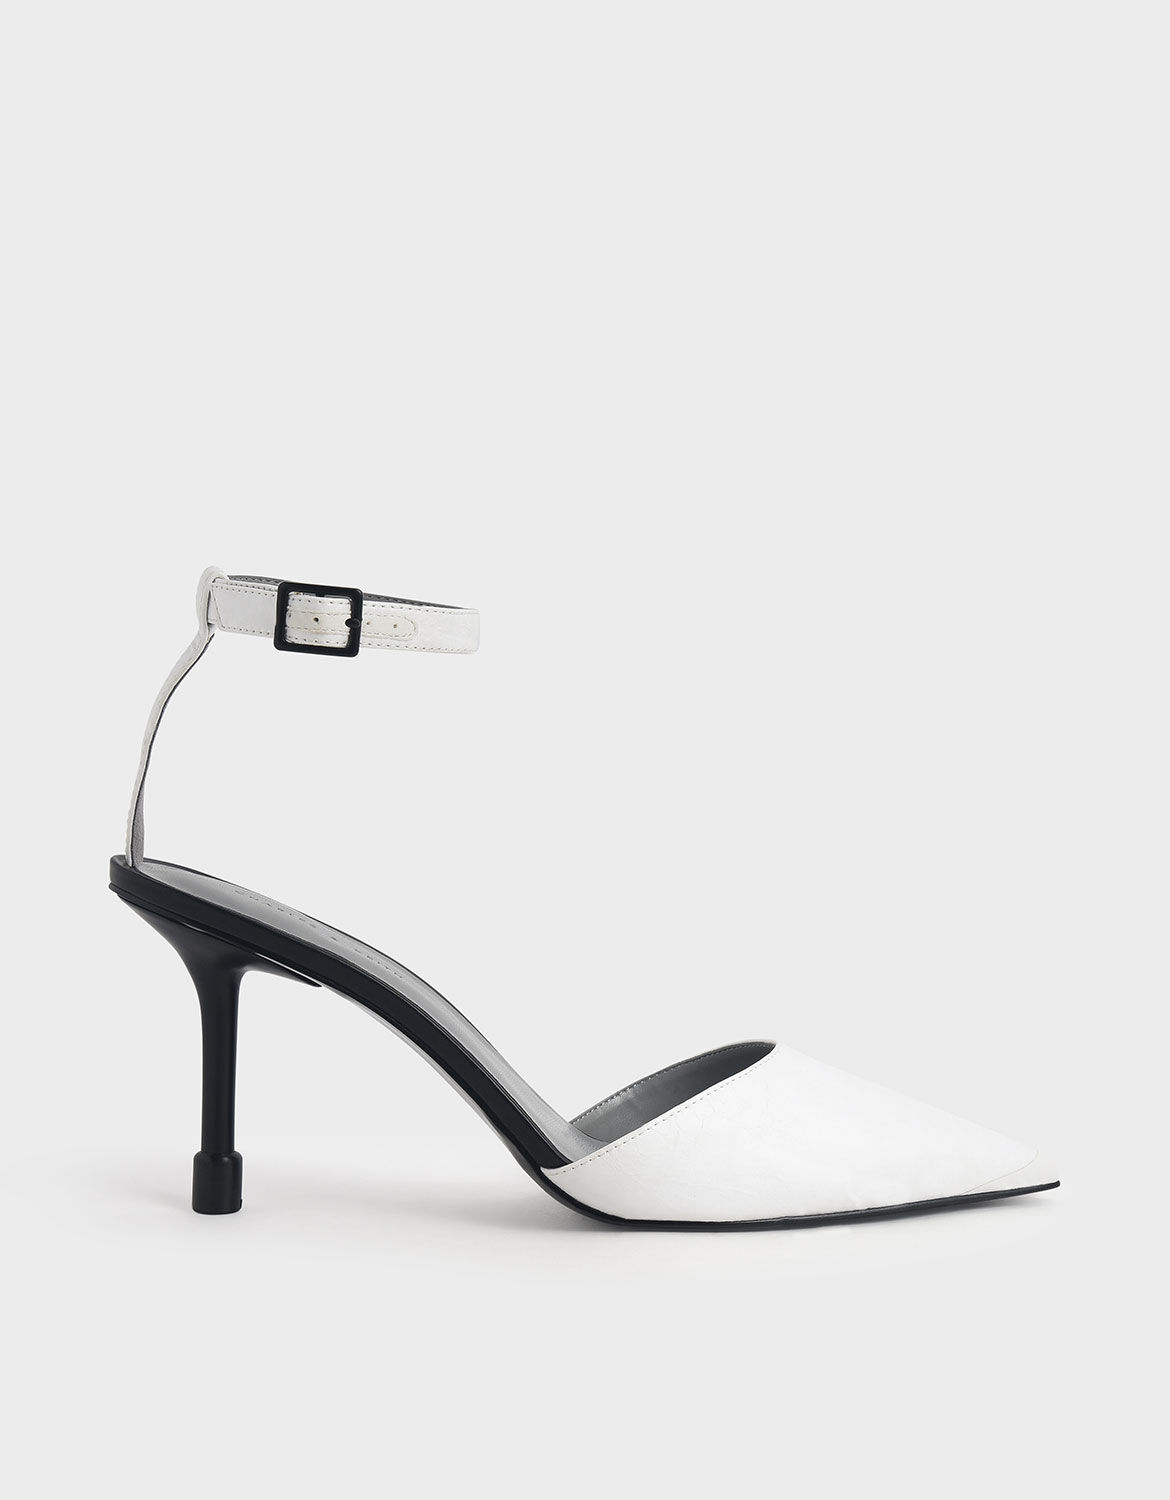 White Ankle Strap Pointed Toe Pumps